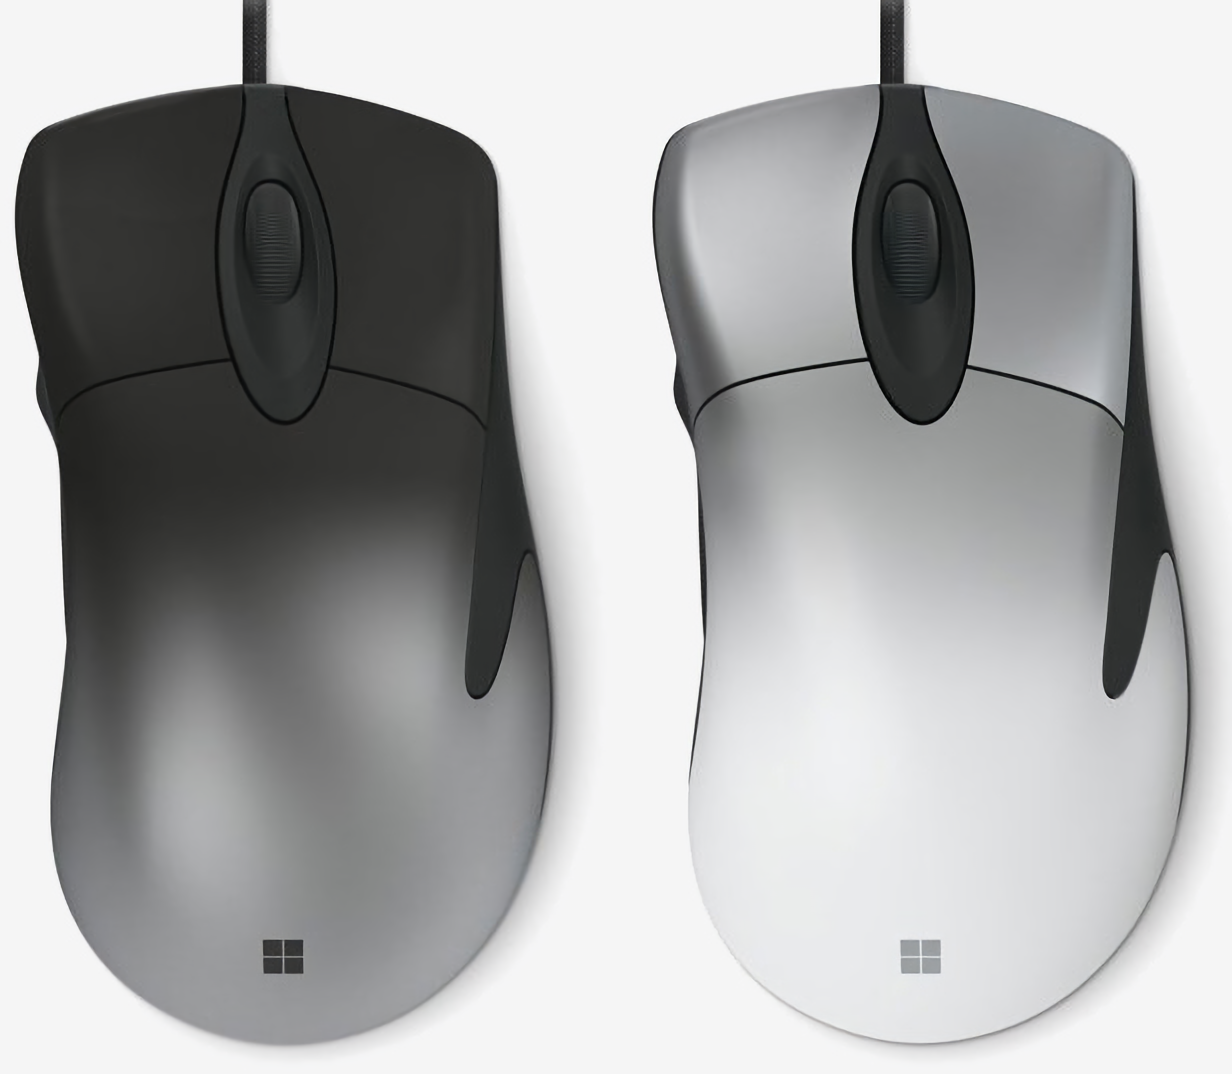 Microsoft's retro-inspired Pro IntelliMouse arrives in the US